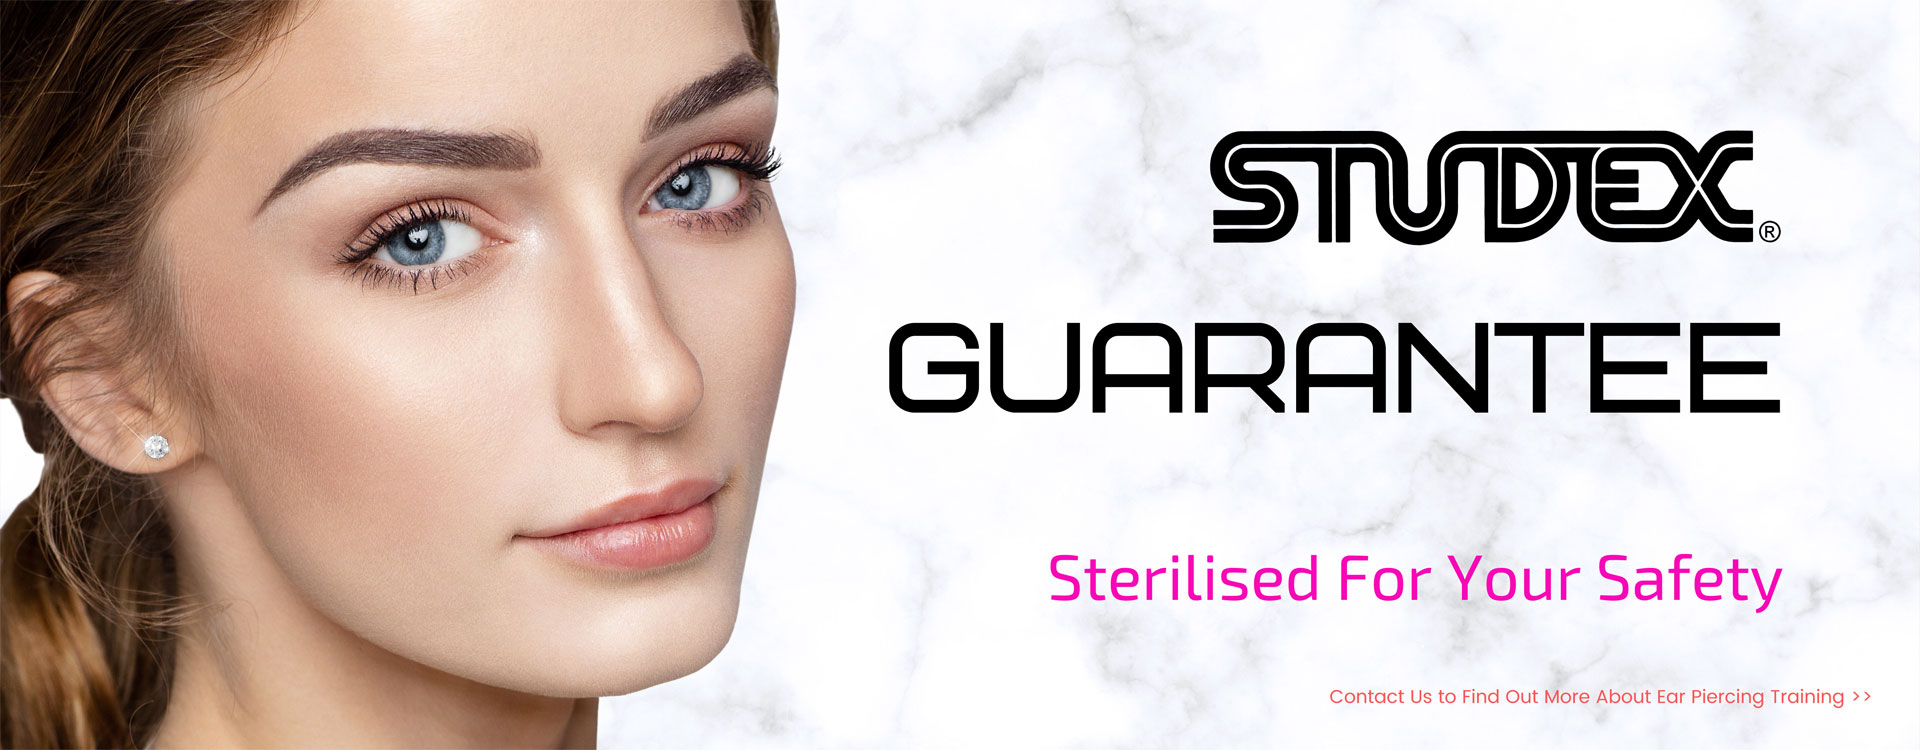 STUDEX-GUARANTEE-1920x750 Distributor of Studex Ear Piercing, Toys, Jewellery, Beauty Products - Adnohr